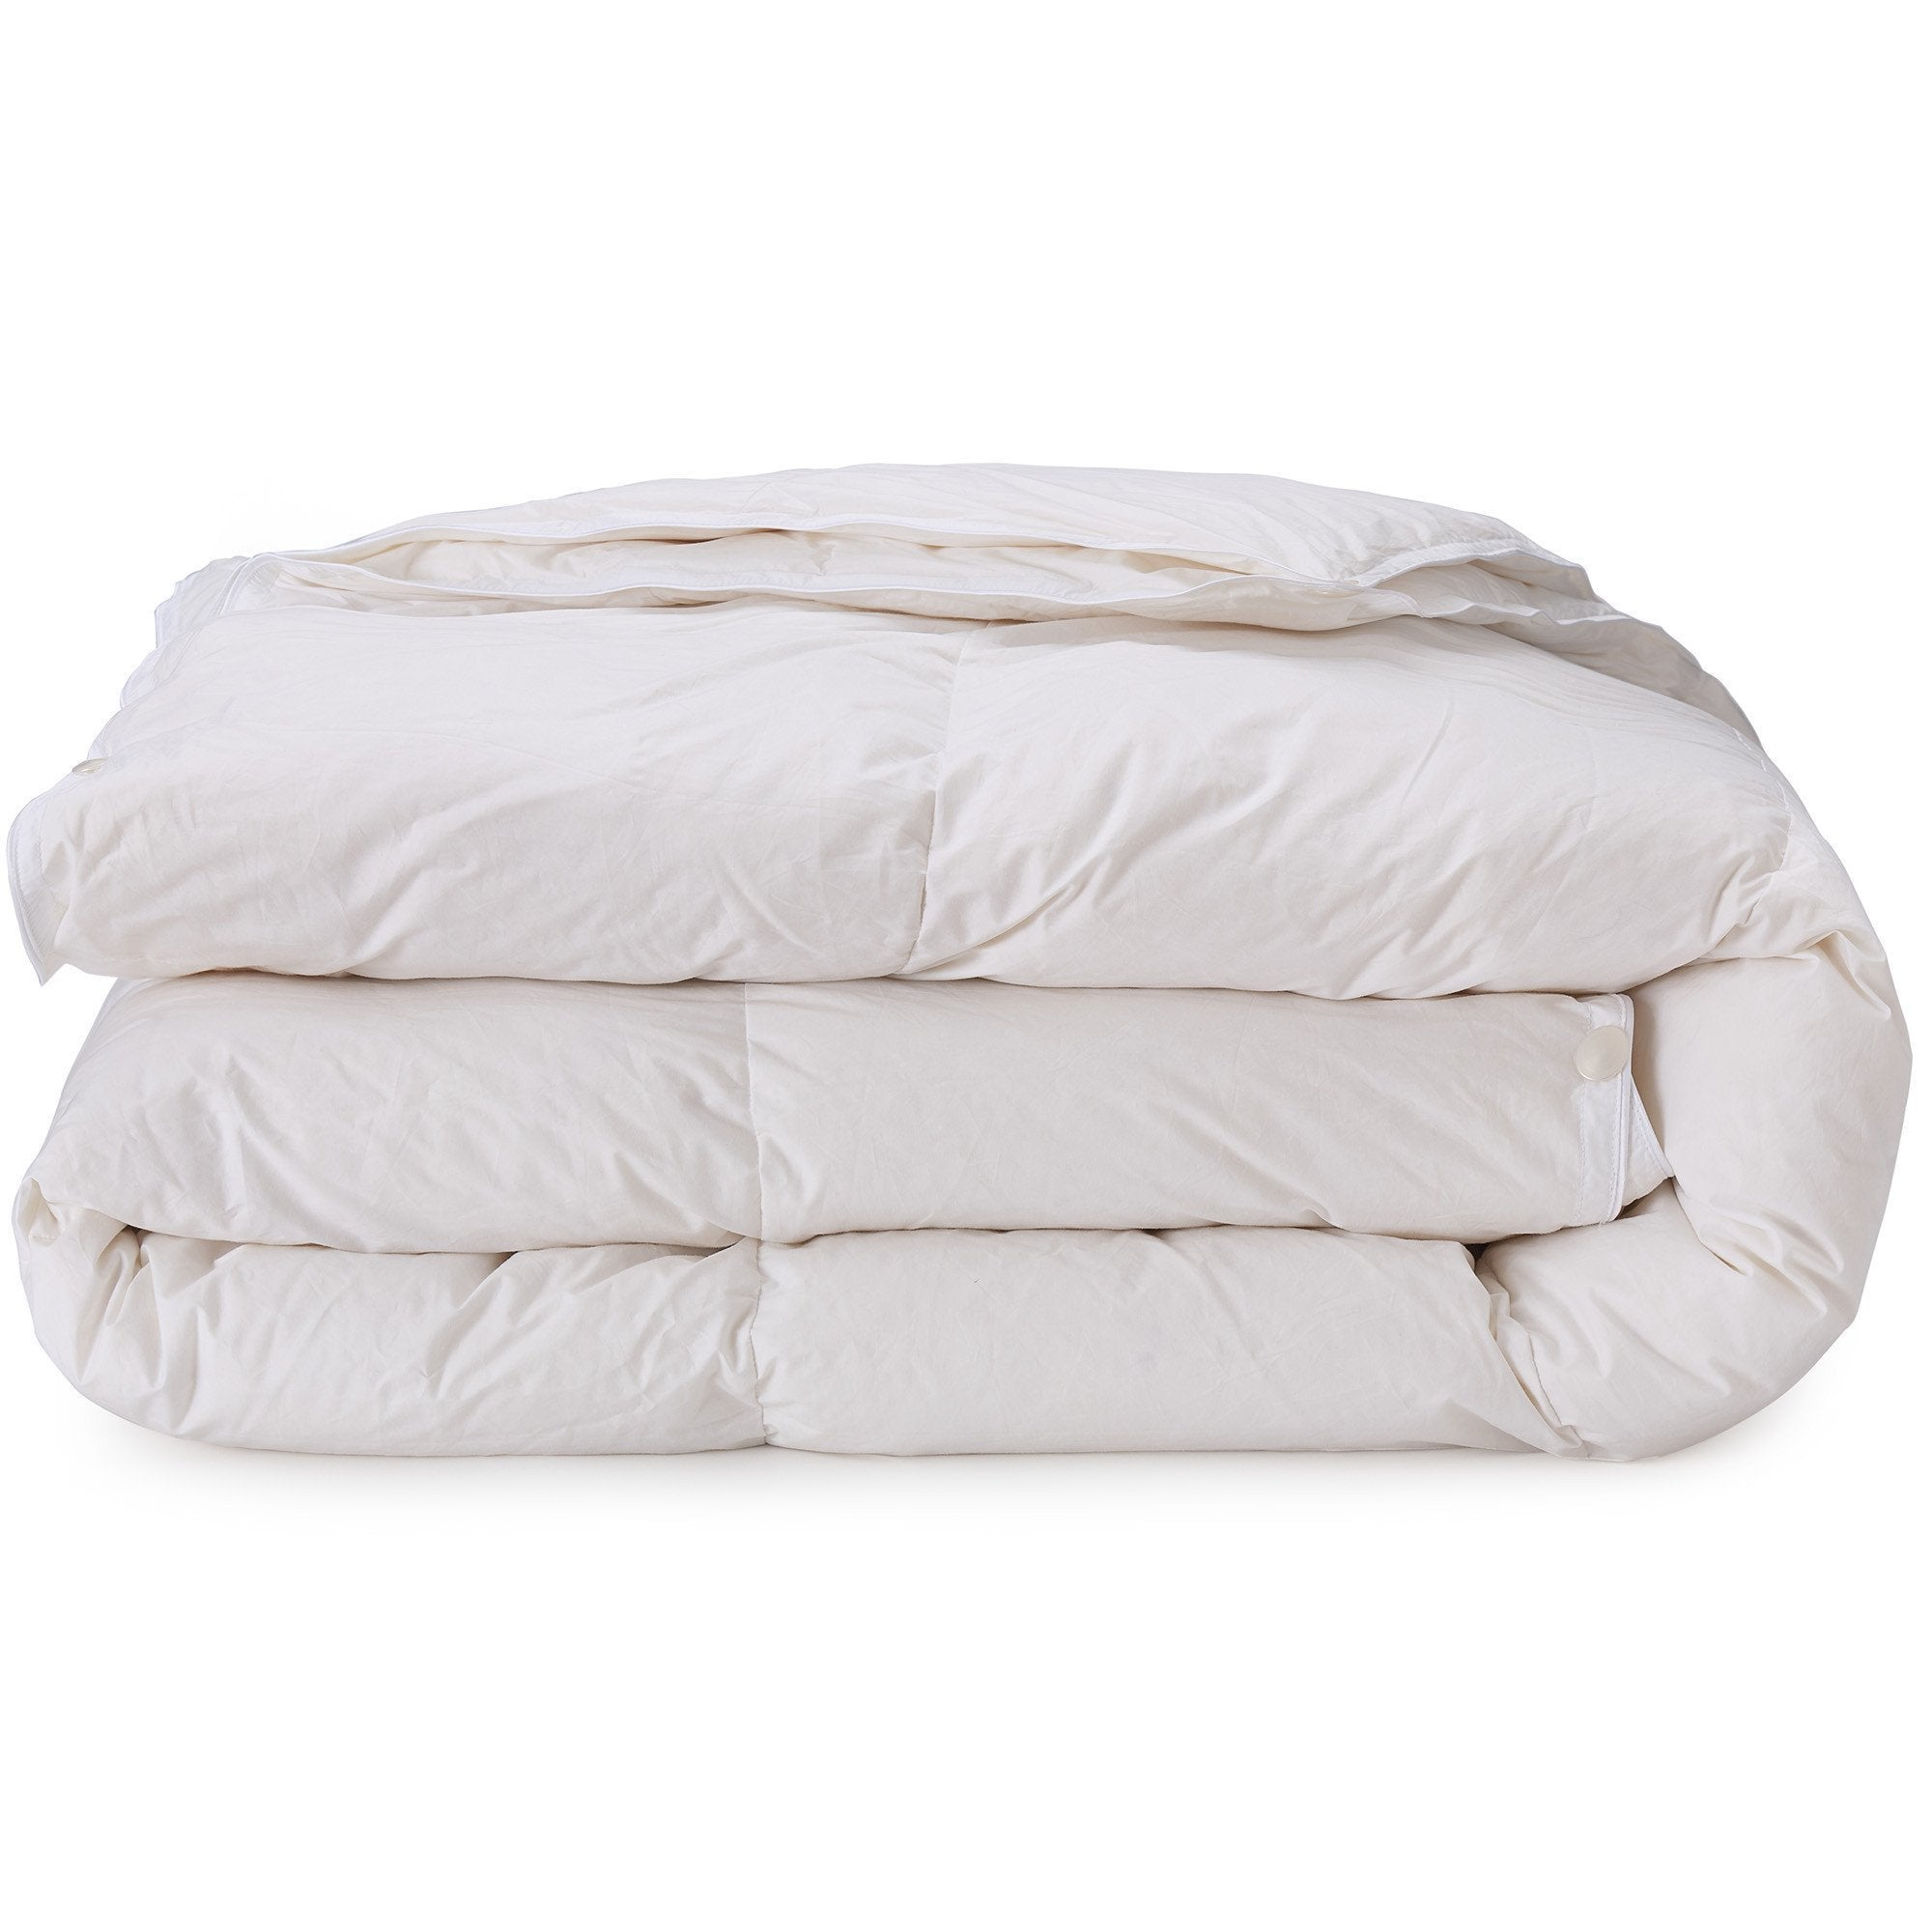 Finning duvet, white, 90% goose down & 10% goose feathers & 100% cotton